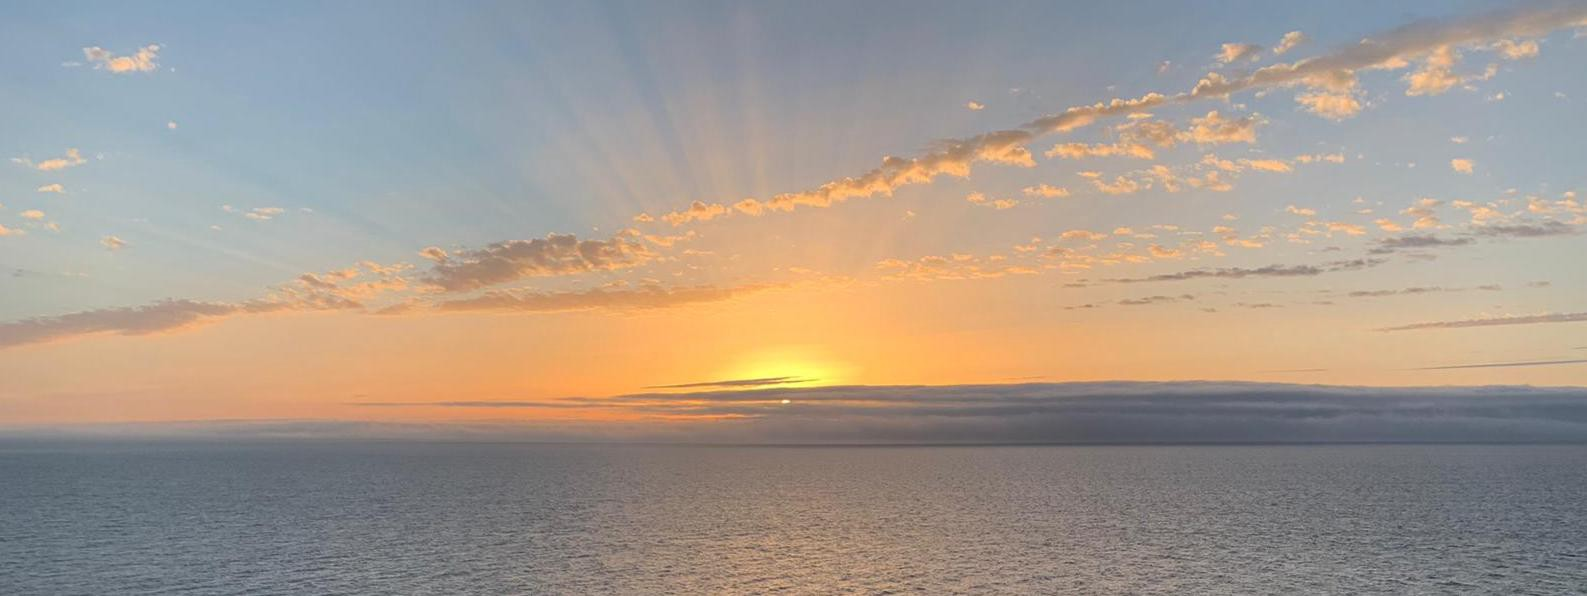 Sunrise on the Irish Sea showing the rays of the sun reflecting on the water.